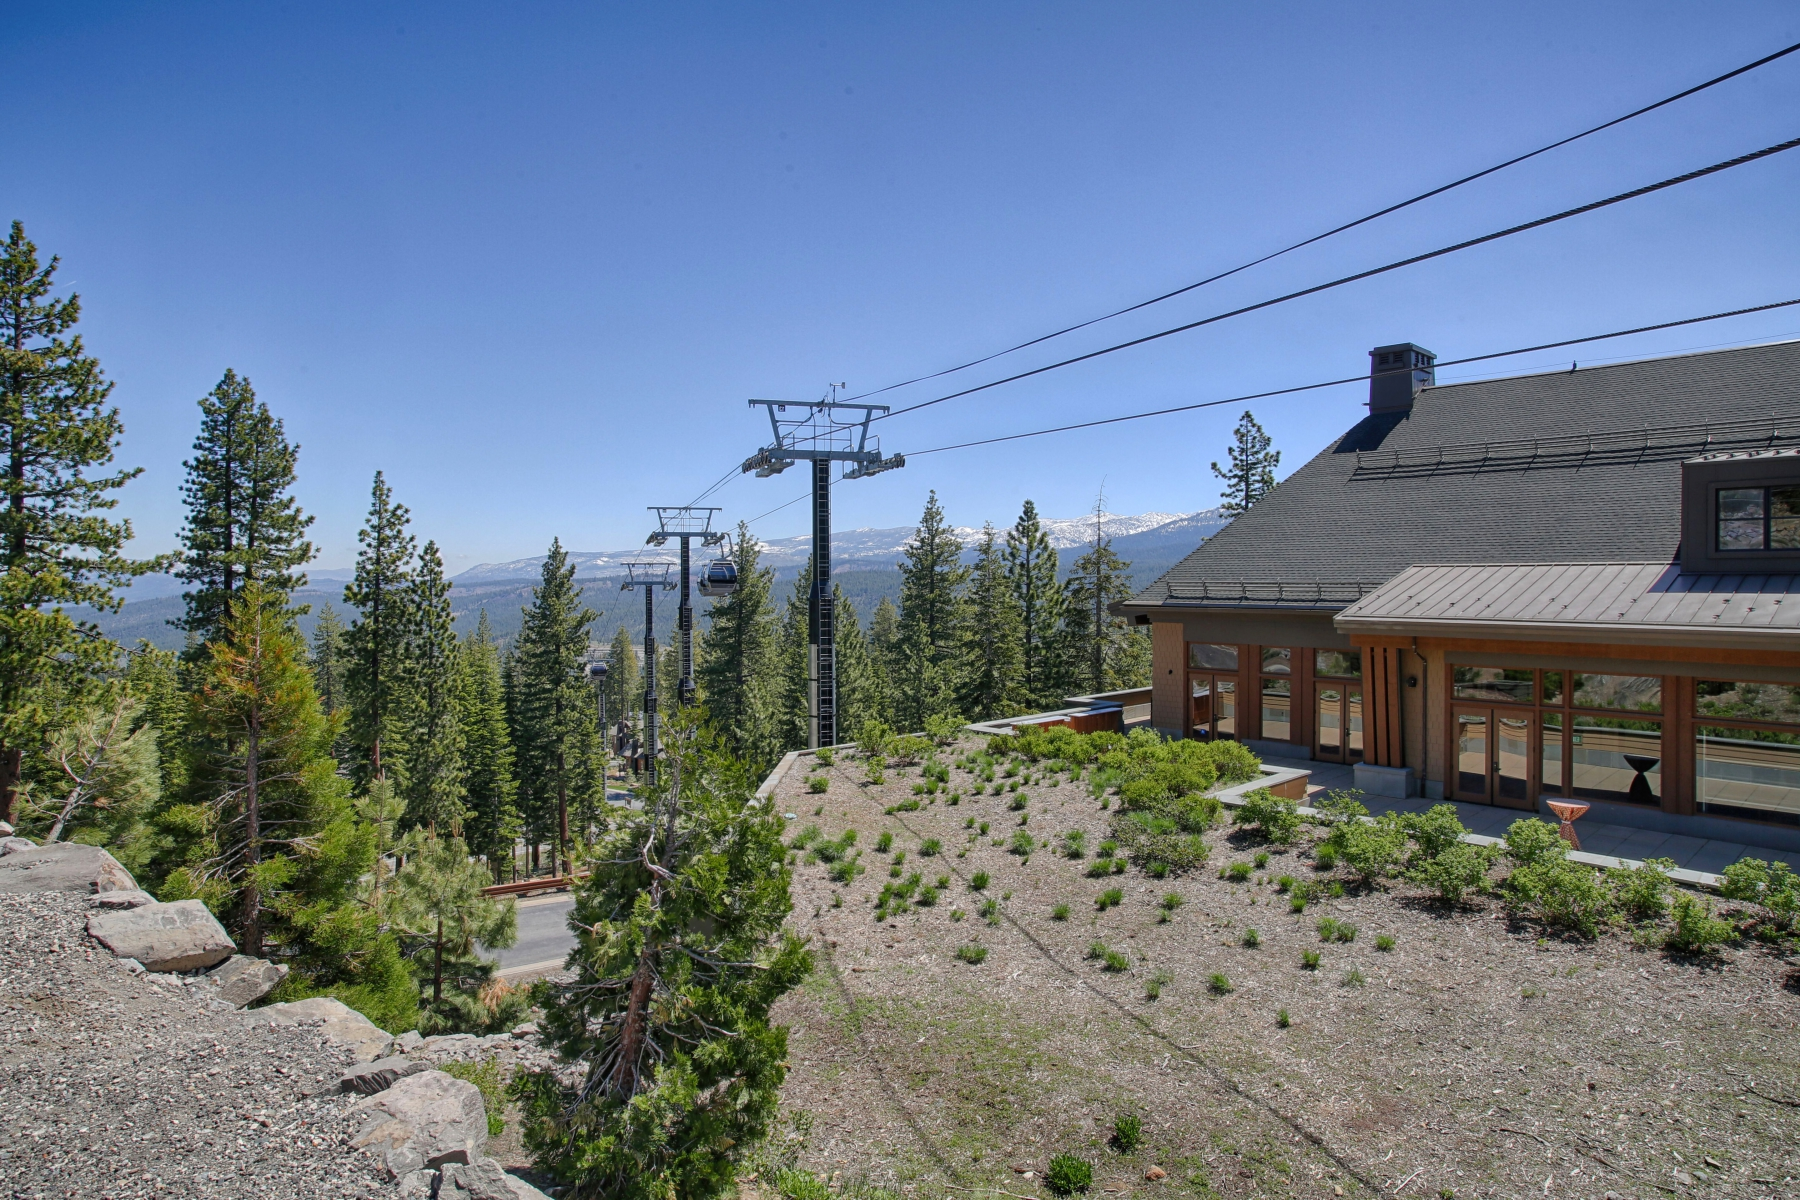 Additional photo for property listing at 13051 Ritz Carlton #4205, Truckee, CA 13051 Ritz Carlton #4205 Truckee, California 96161 United States